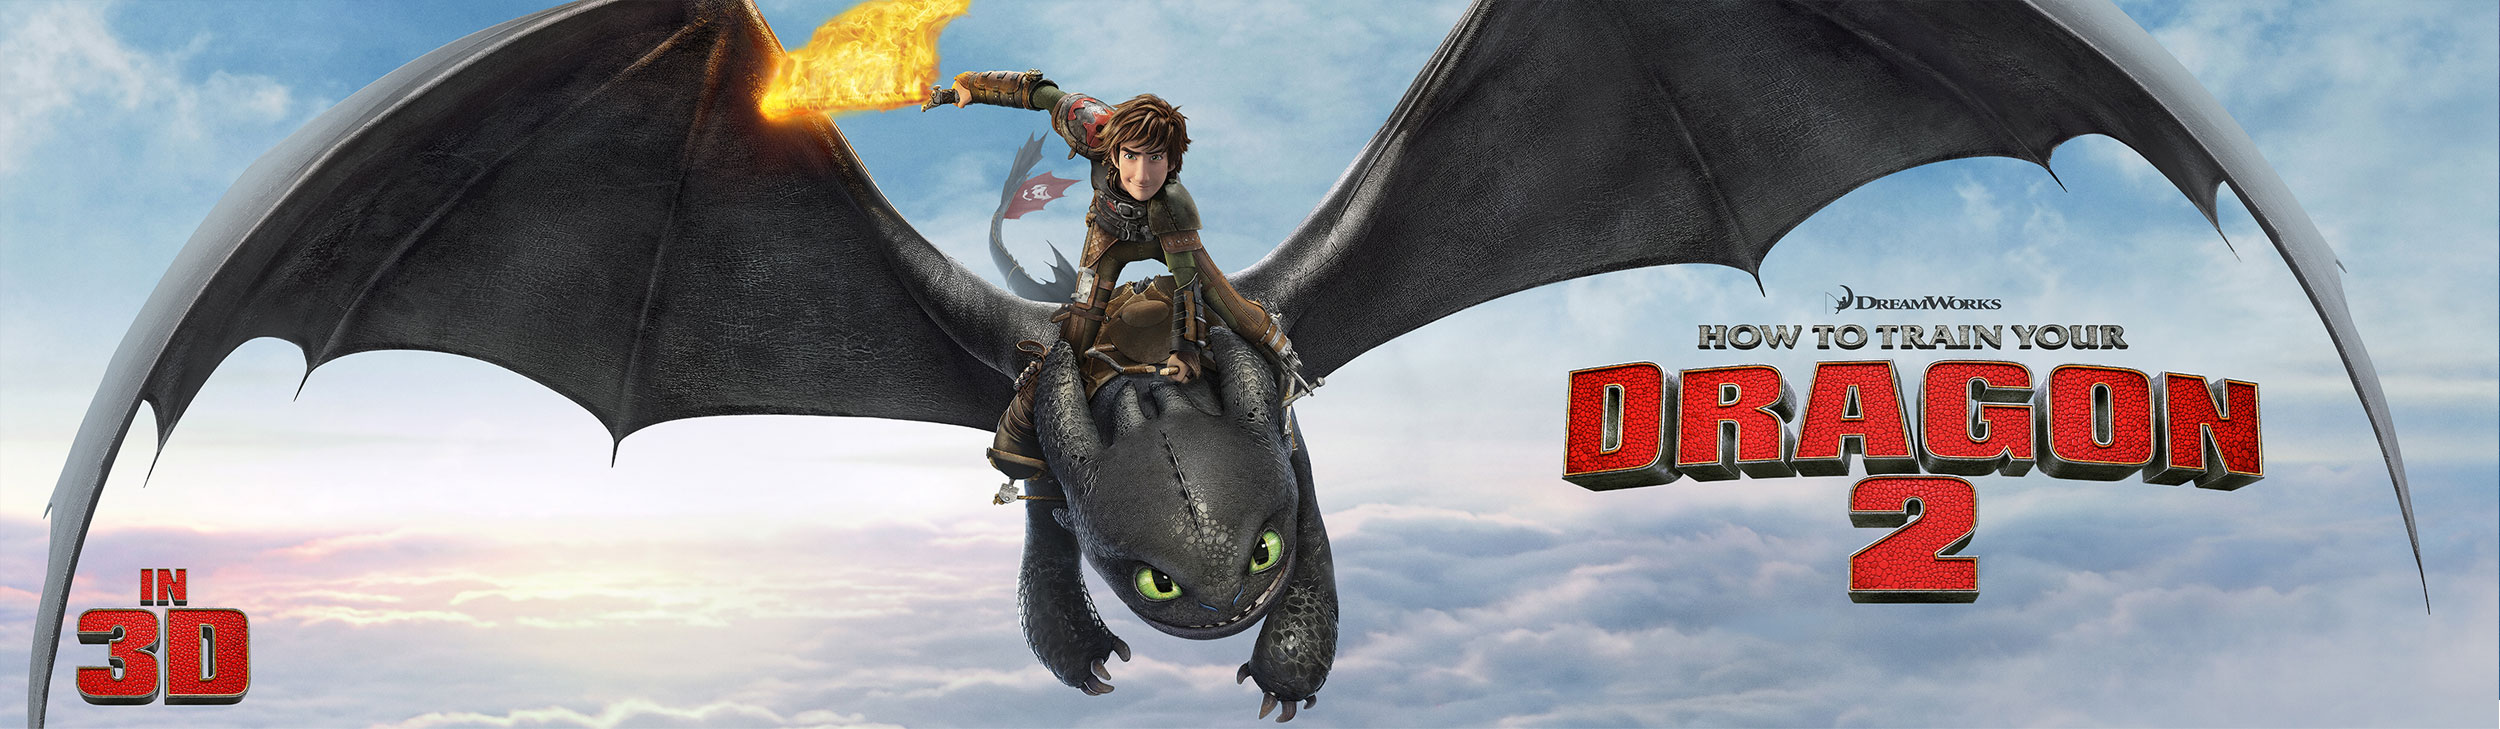 How to Train Your Dragon 2 Header IMG